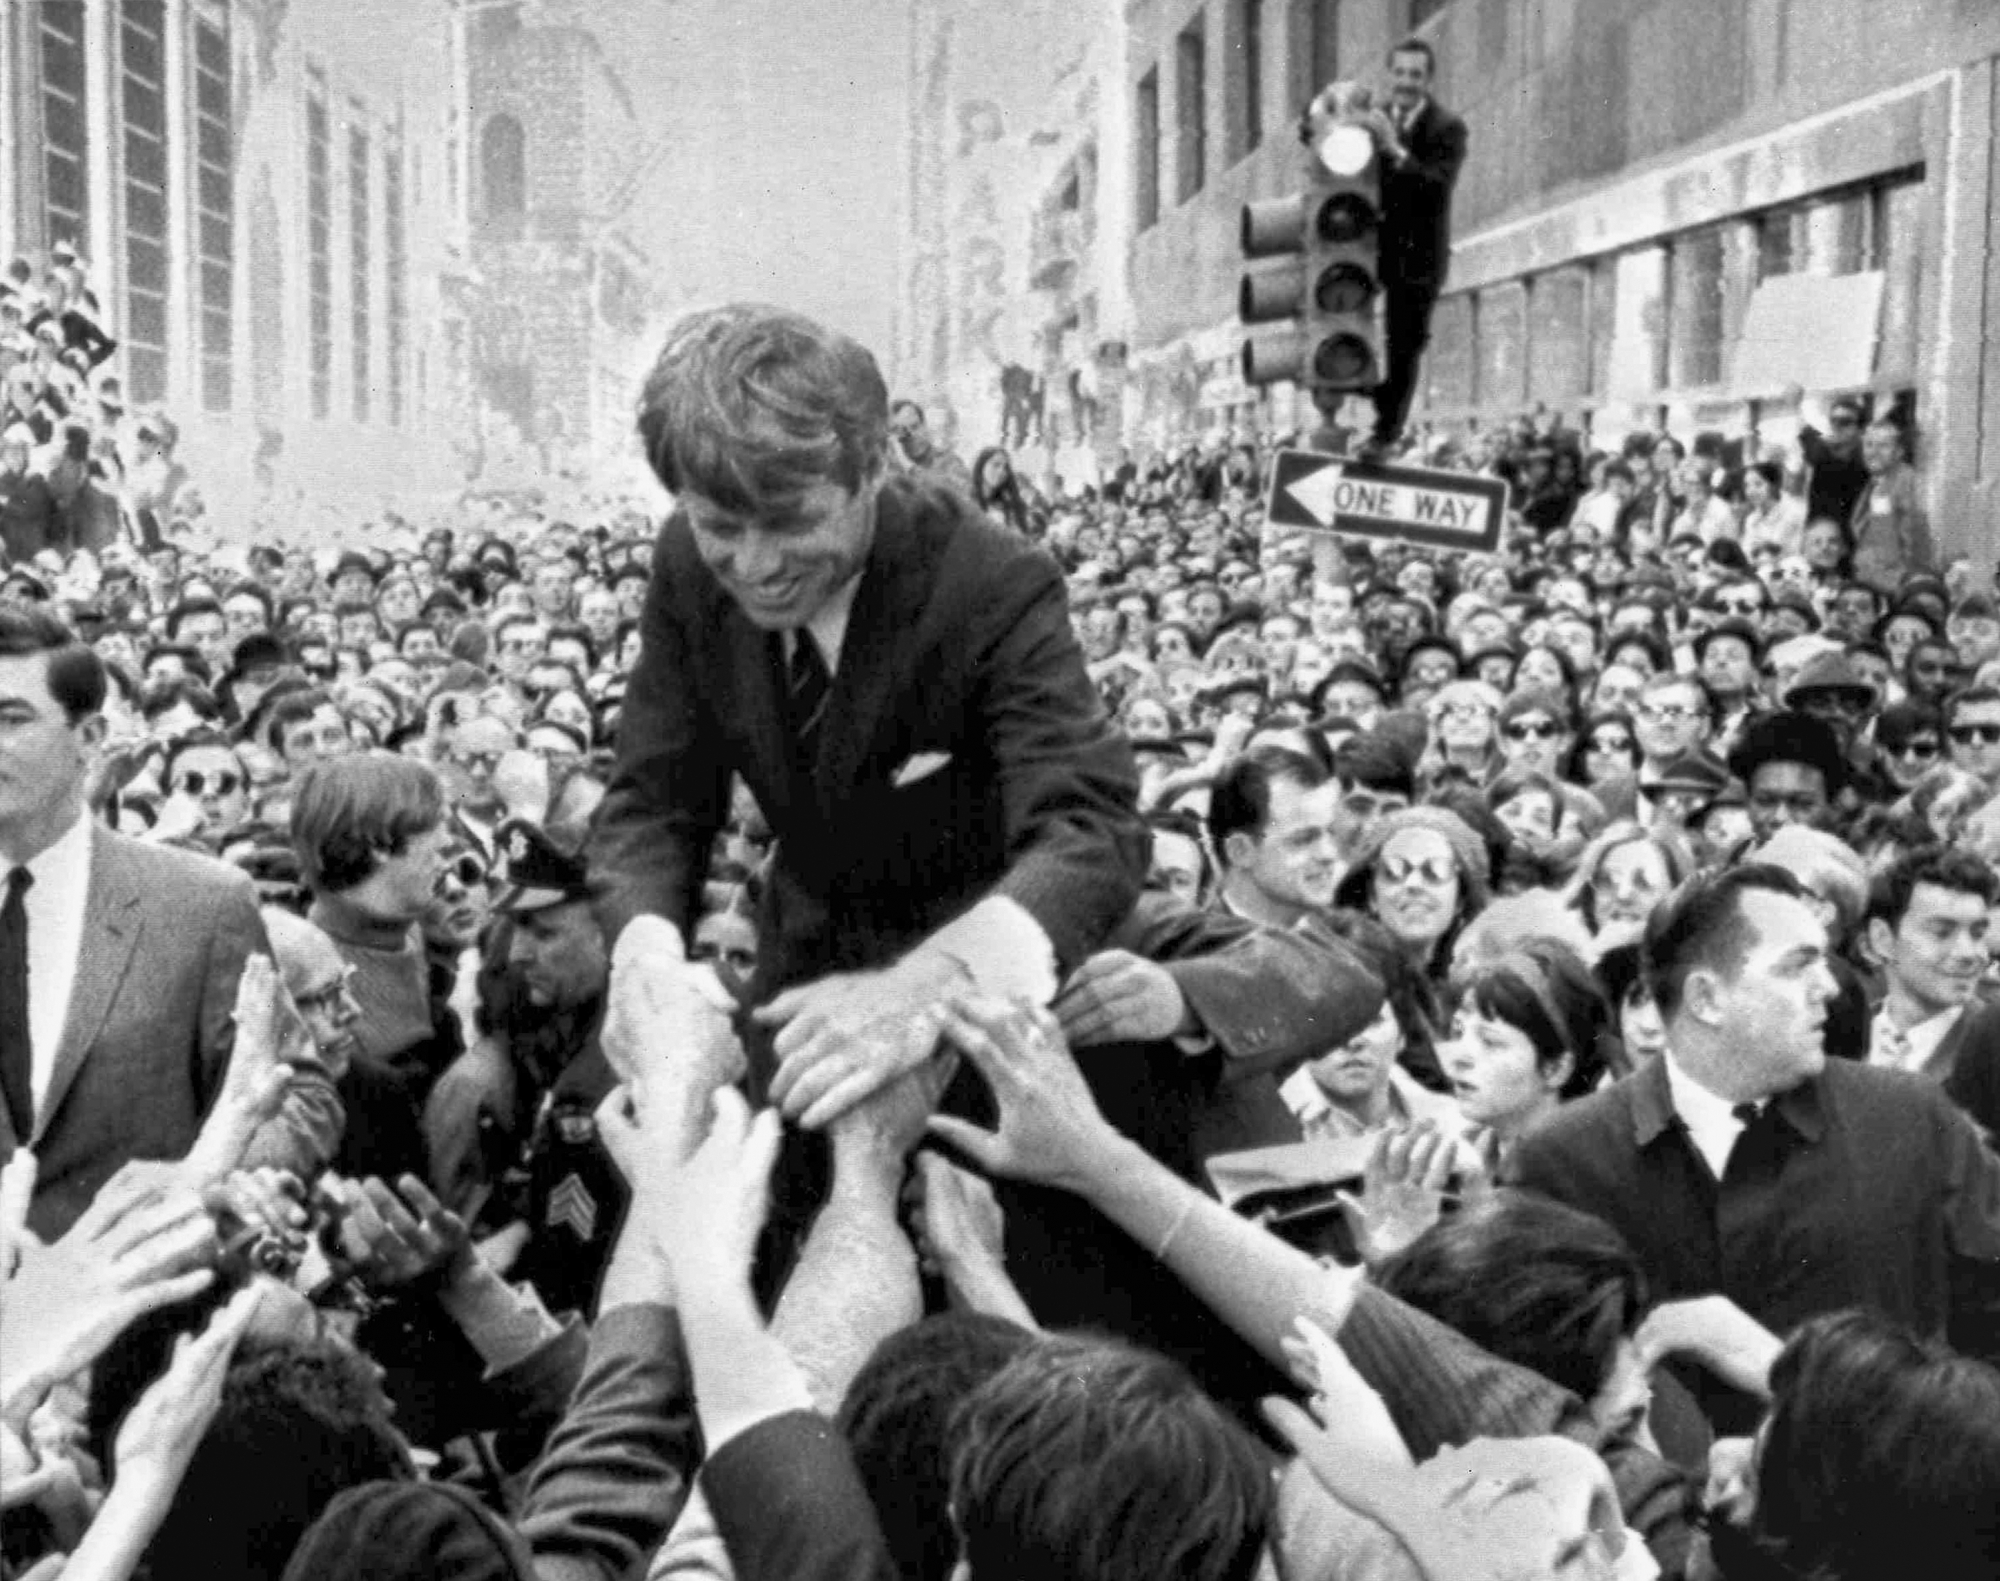 Rfk Grave Quotes: Remembering Robert F. Kennedy 50